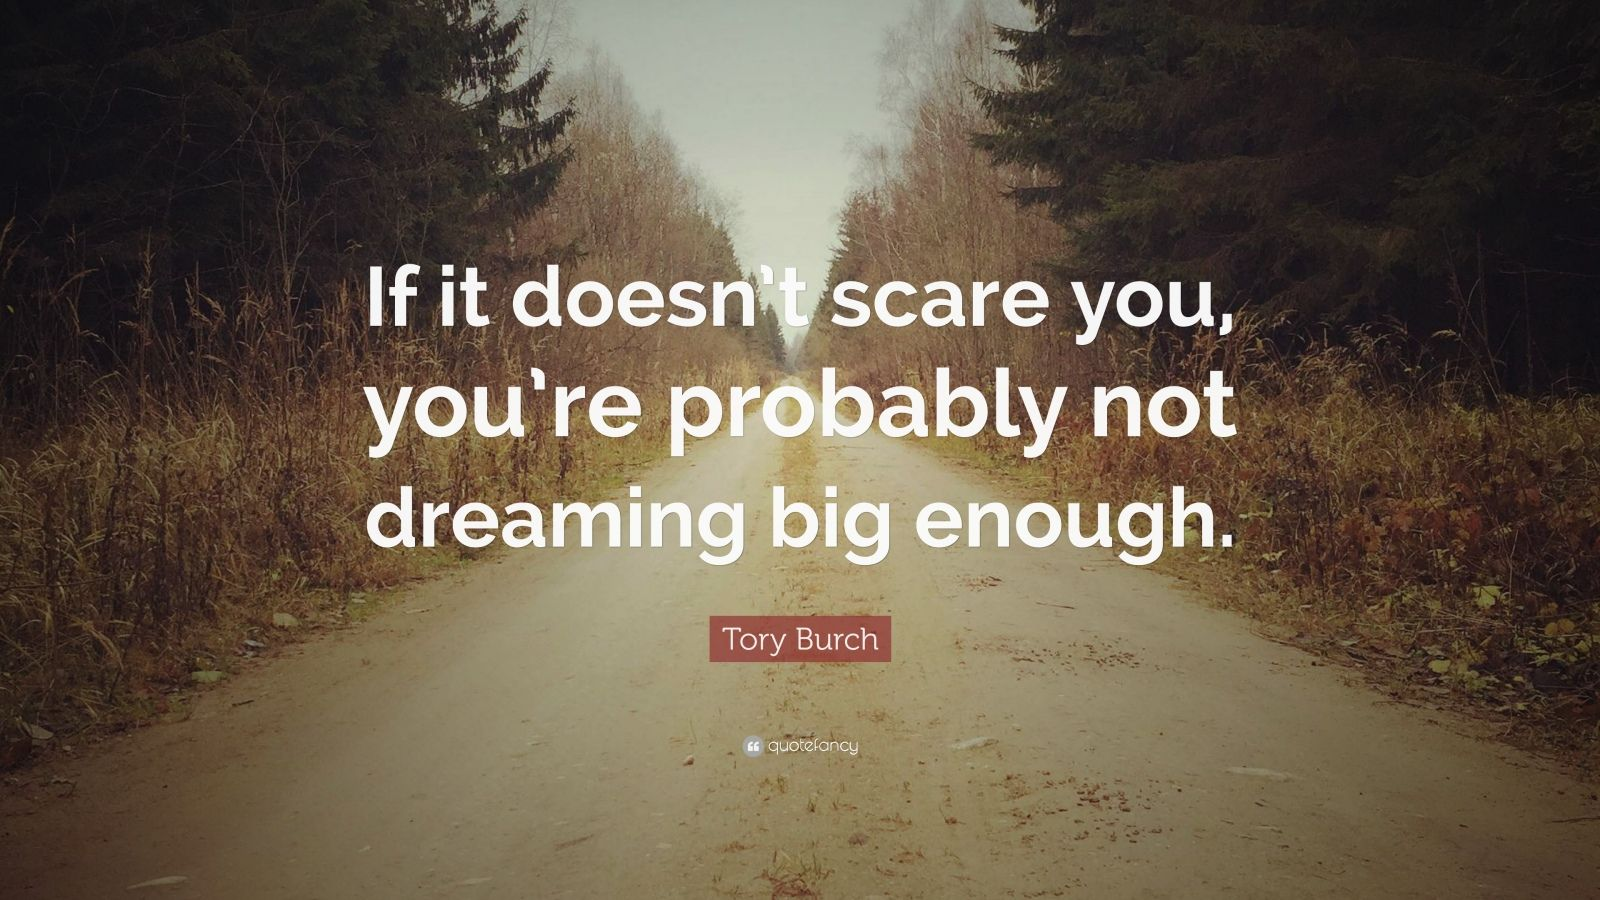 Steve Jobs Motivational Quotes Wallpaper Tory Burch Quote If It Doesn T Scare You You Re